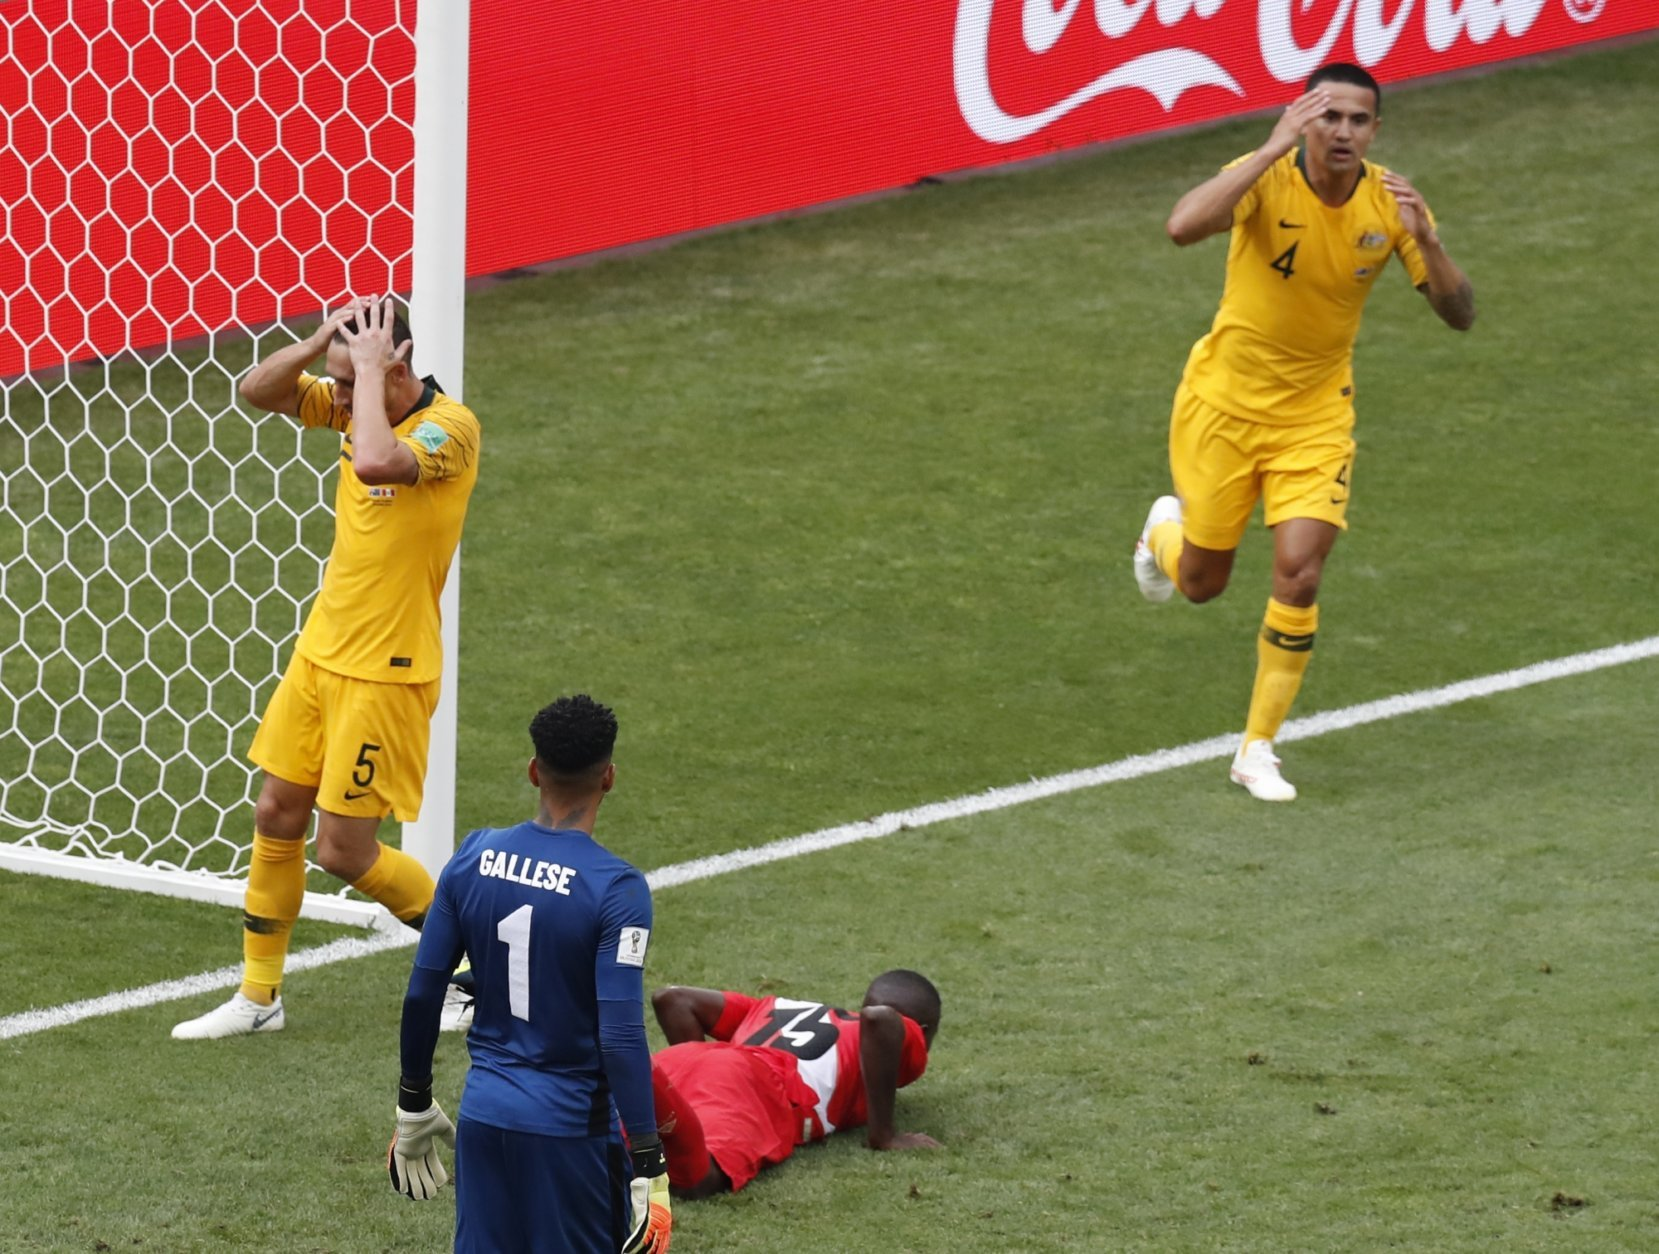 Australia's Mark Milligan, left, and Australia's Tim Cahill, right, react after missing a chance to score during the group C match between Australia and Peru, at the 2018 soccer World Cup in the Fisht Stadium in Sochi, Russia, Tuesday, June 26, 2018. (AP Photo/Efrem Lukatsky)